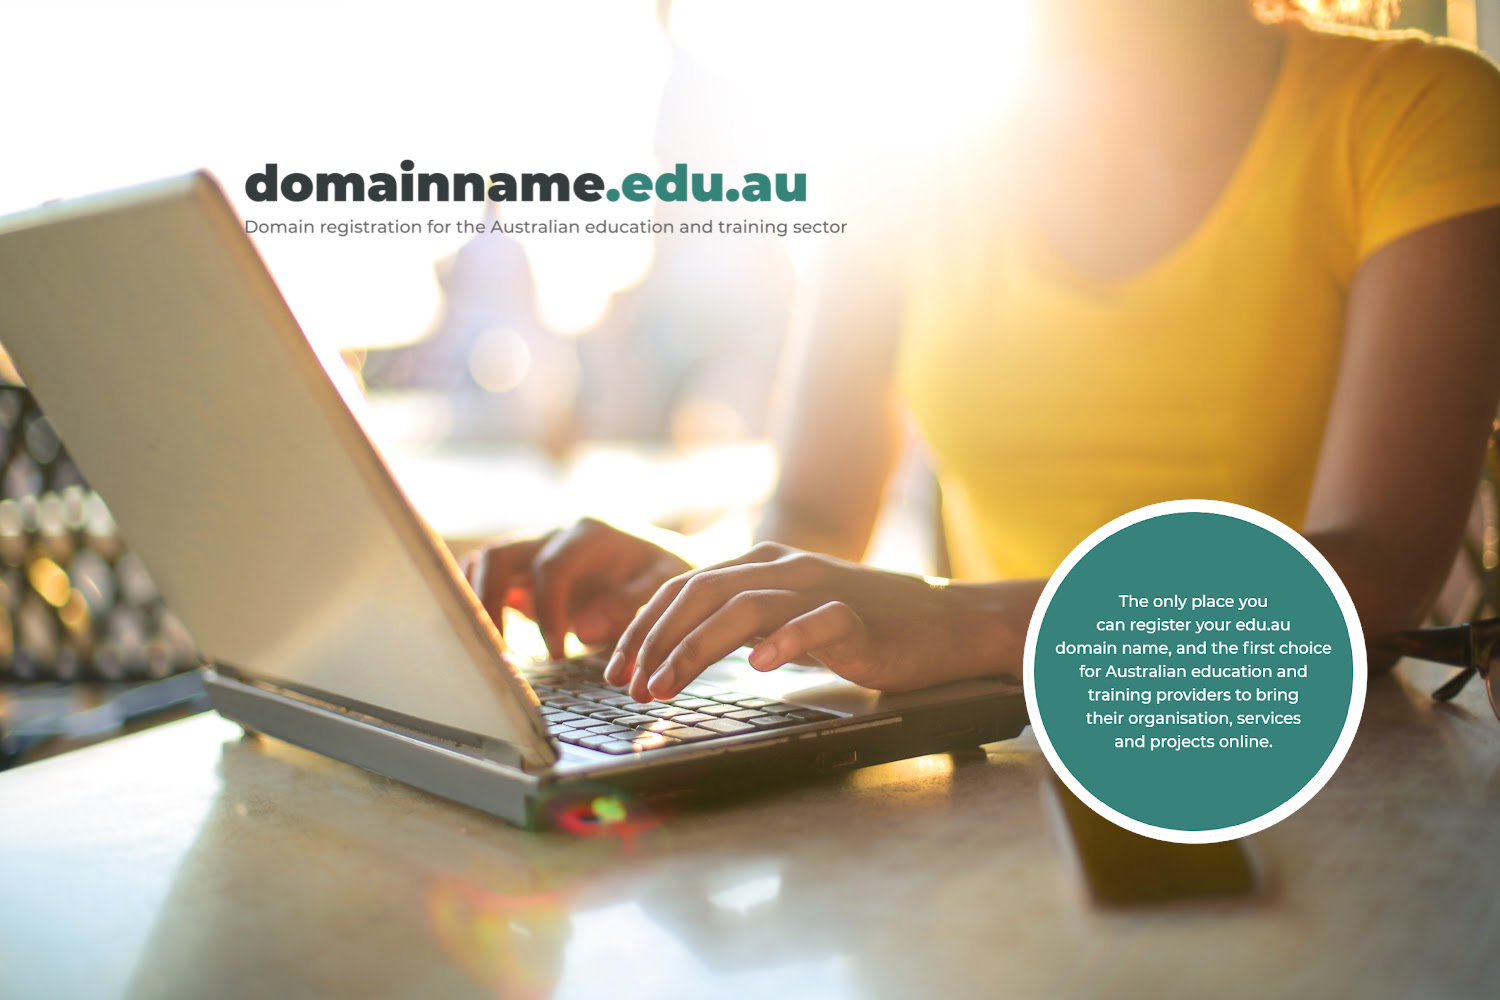 Show you are a recognised education provider with an edu.au domain